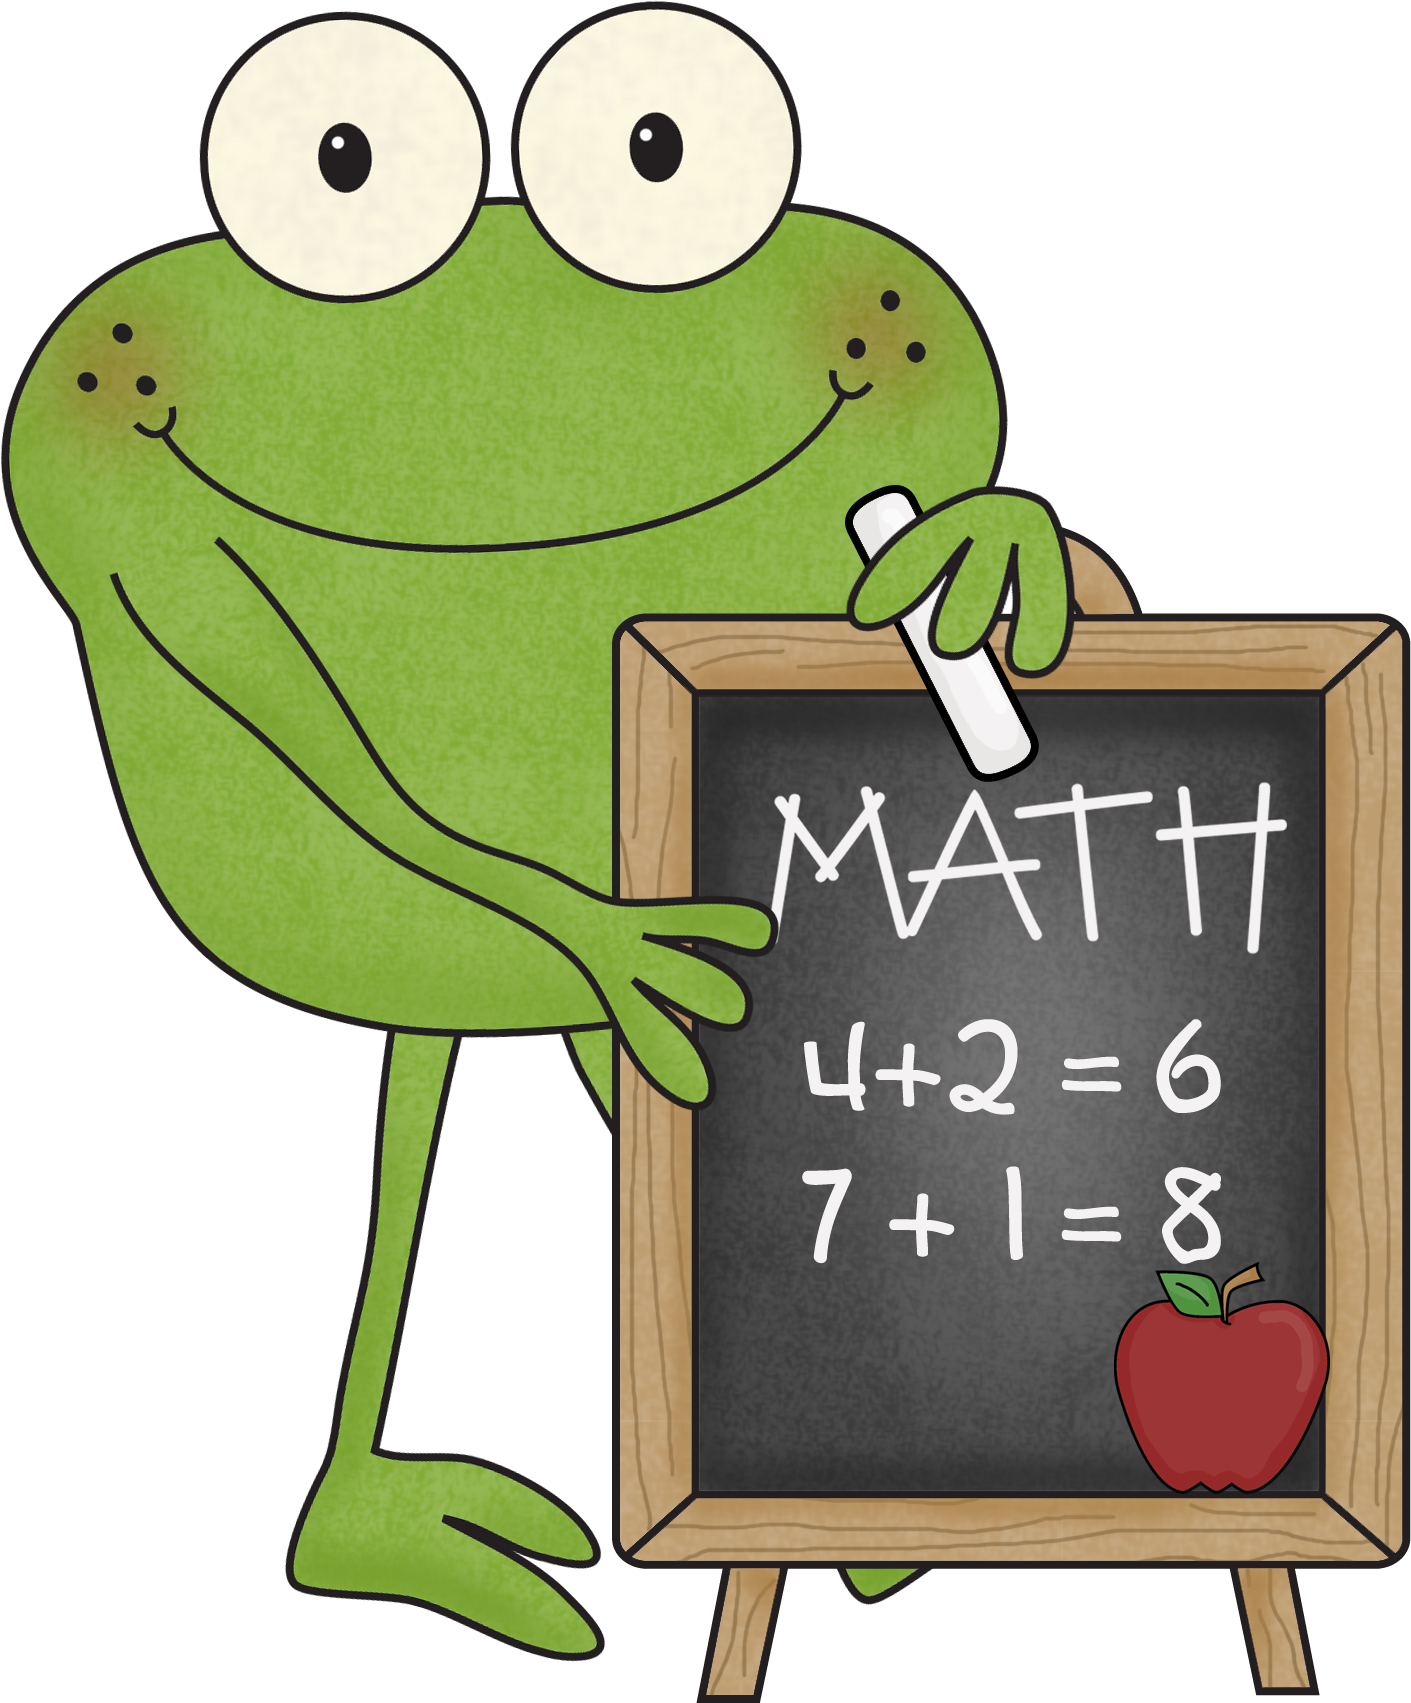 math homework Pre-algebra, algebra i, algebra ii, geometry: homework help by free math tutors, solvers, lessonseach section has solvers (calculators), lessons, and a place where you can submit your problem to our free math tutors.